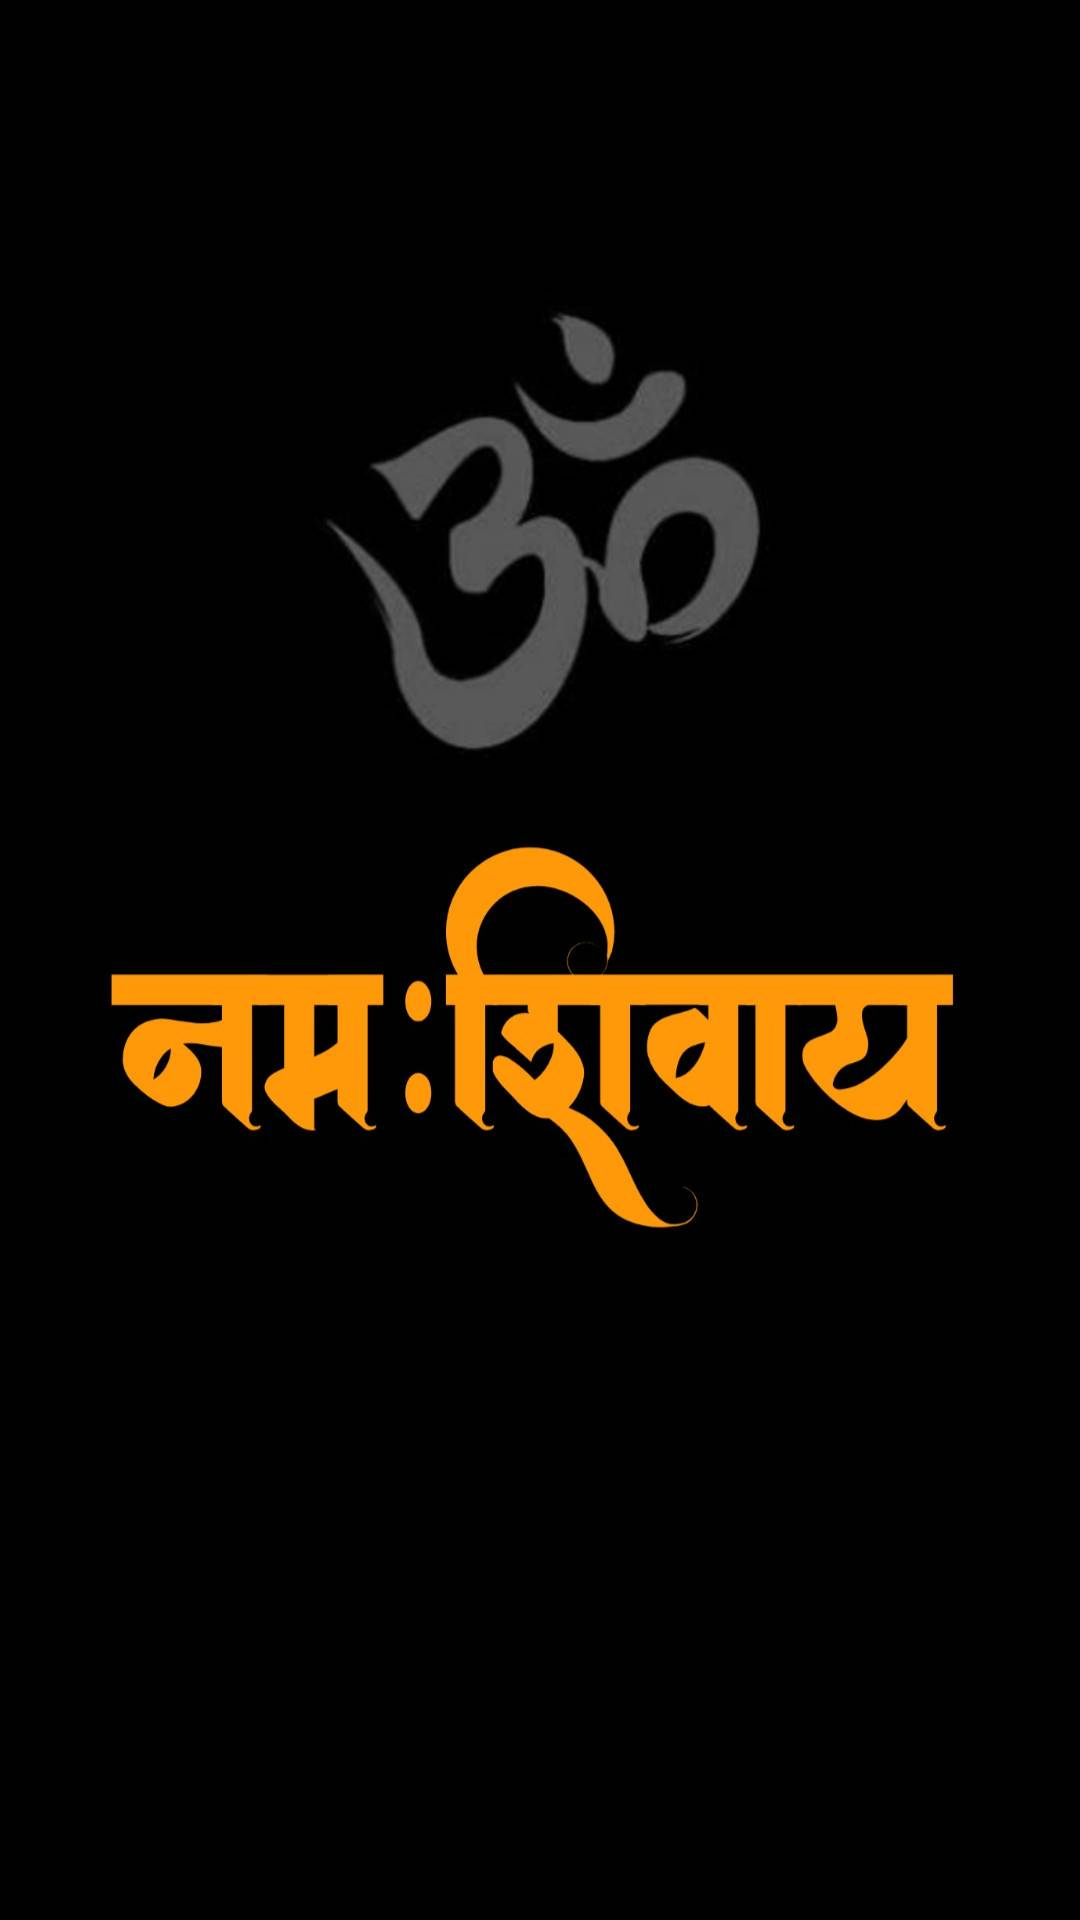 Om Namah Shivaya iPhone Wallpaper